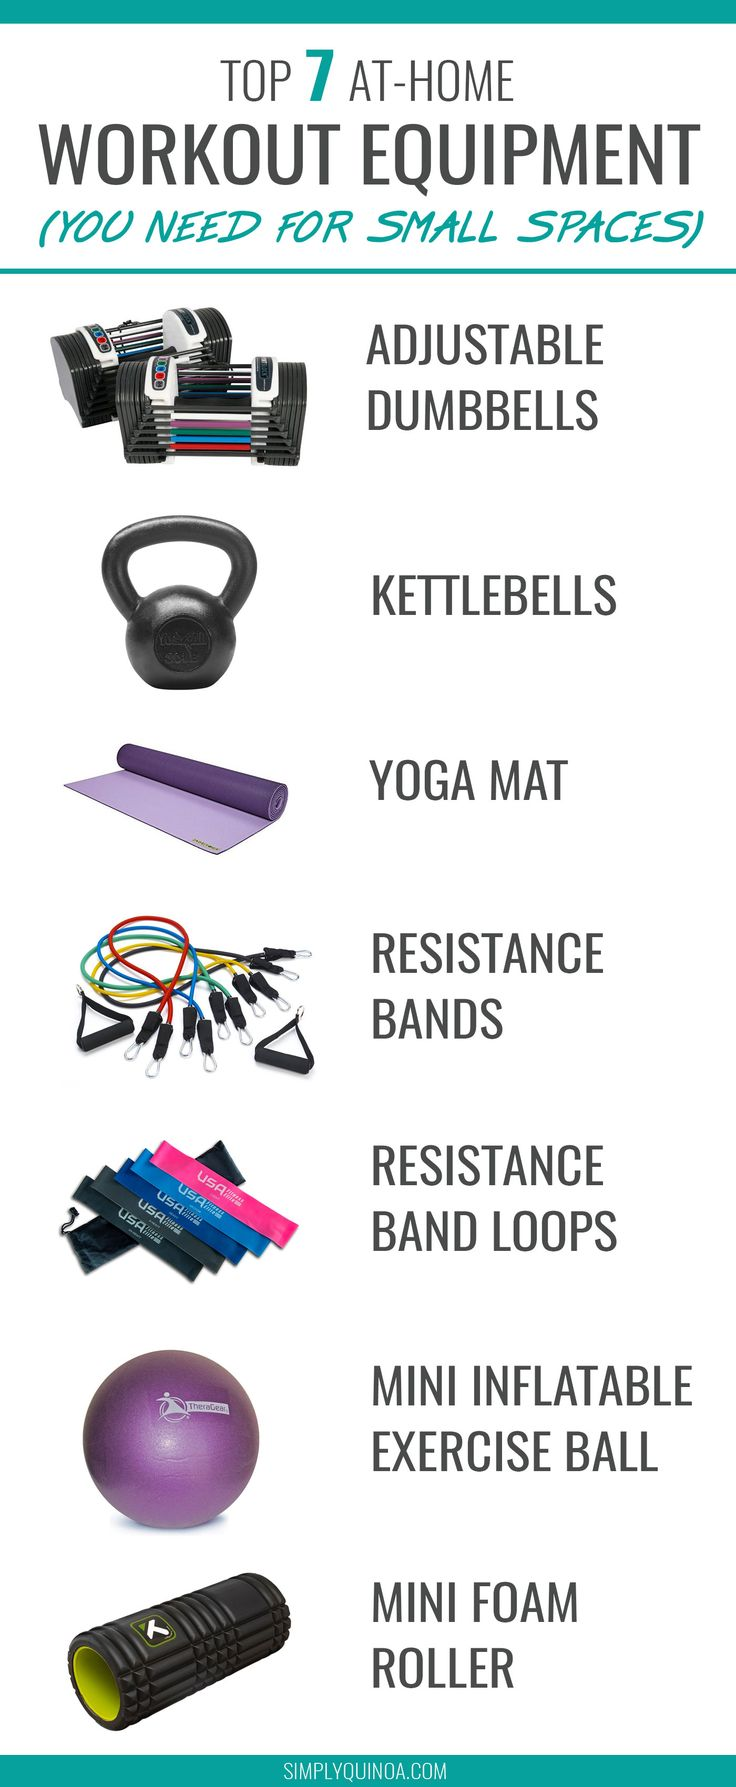 TOP 7 AT-HOME EXERCISE EQUIPMENT FOR SMALL SPACES!! Want to work out at home but feeling cramped? Check out the MUST HAVE exercise equipment when you have no space to workout!